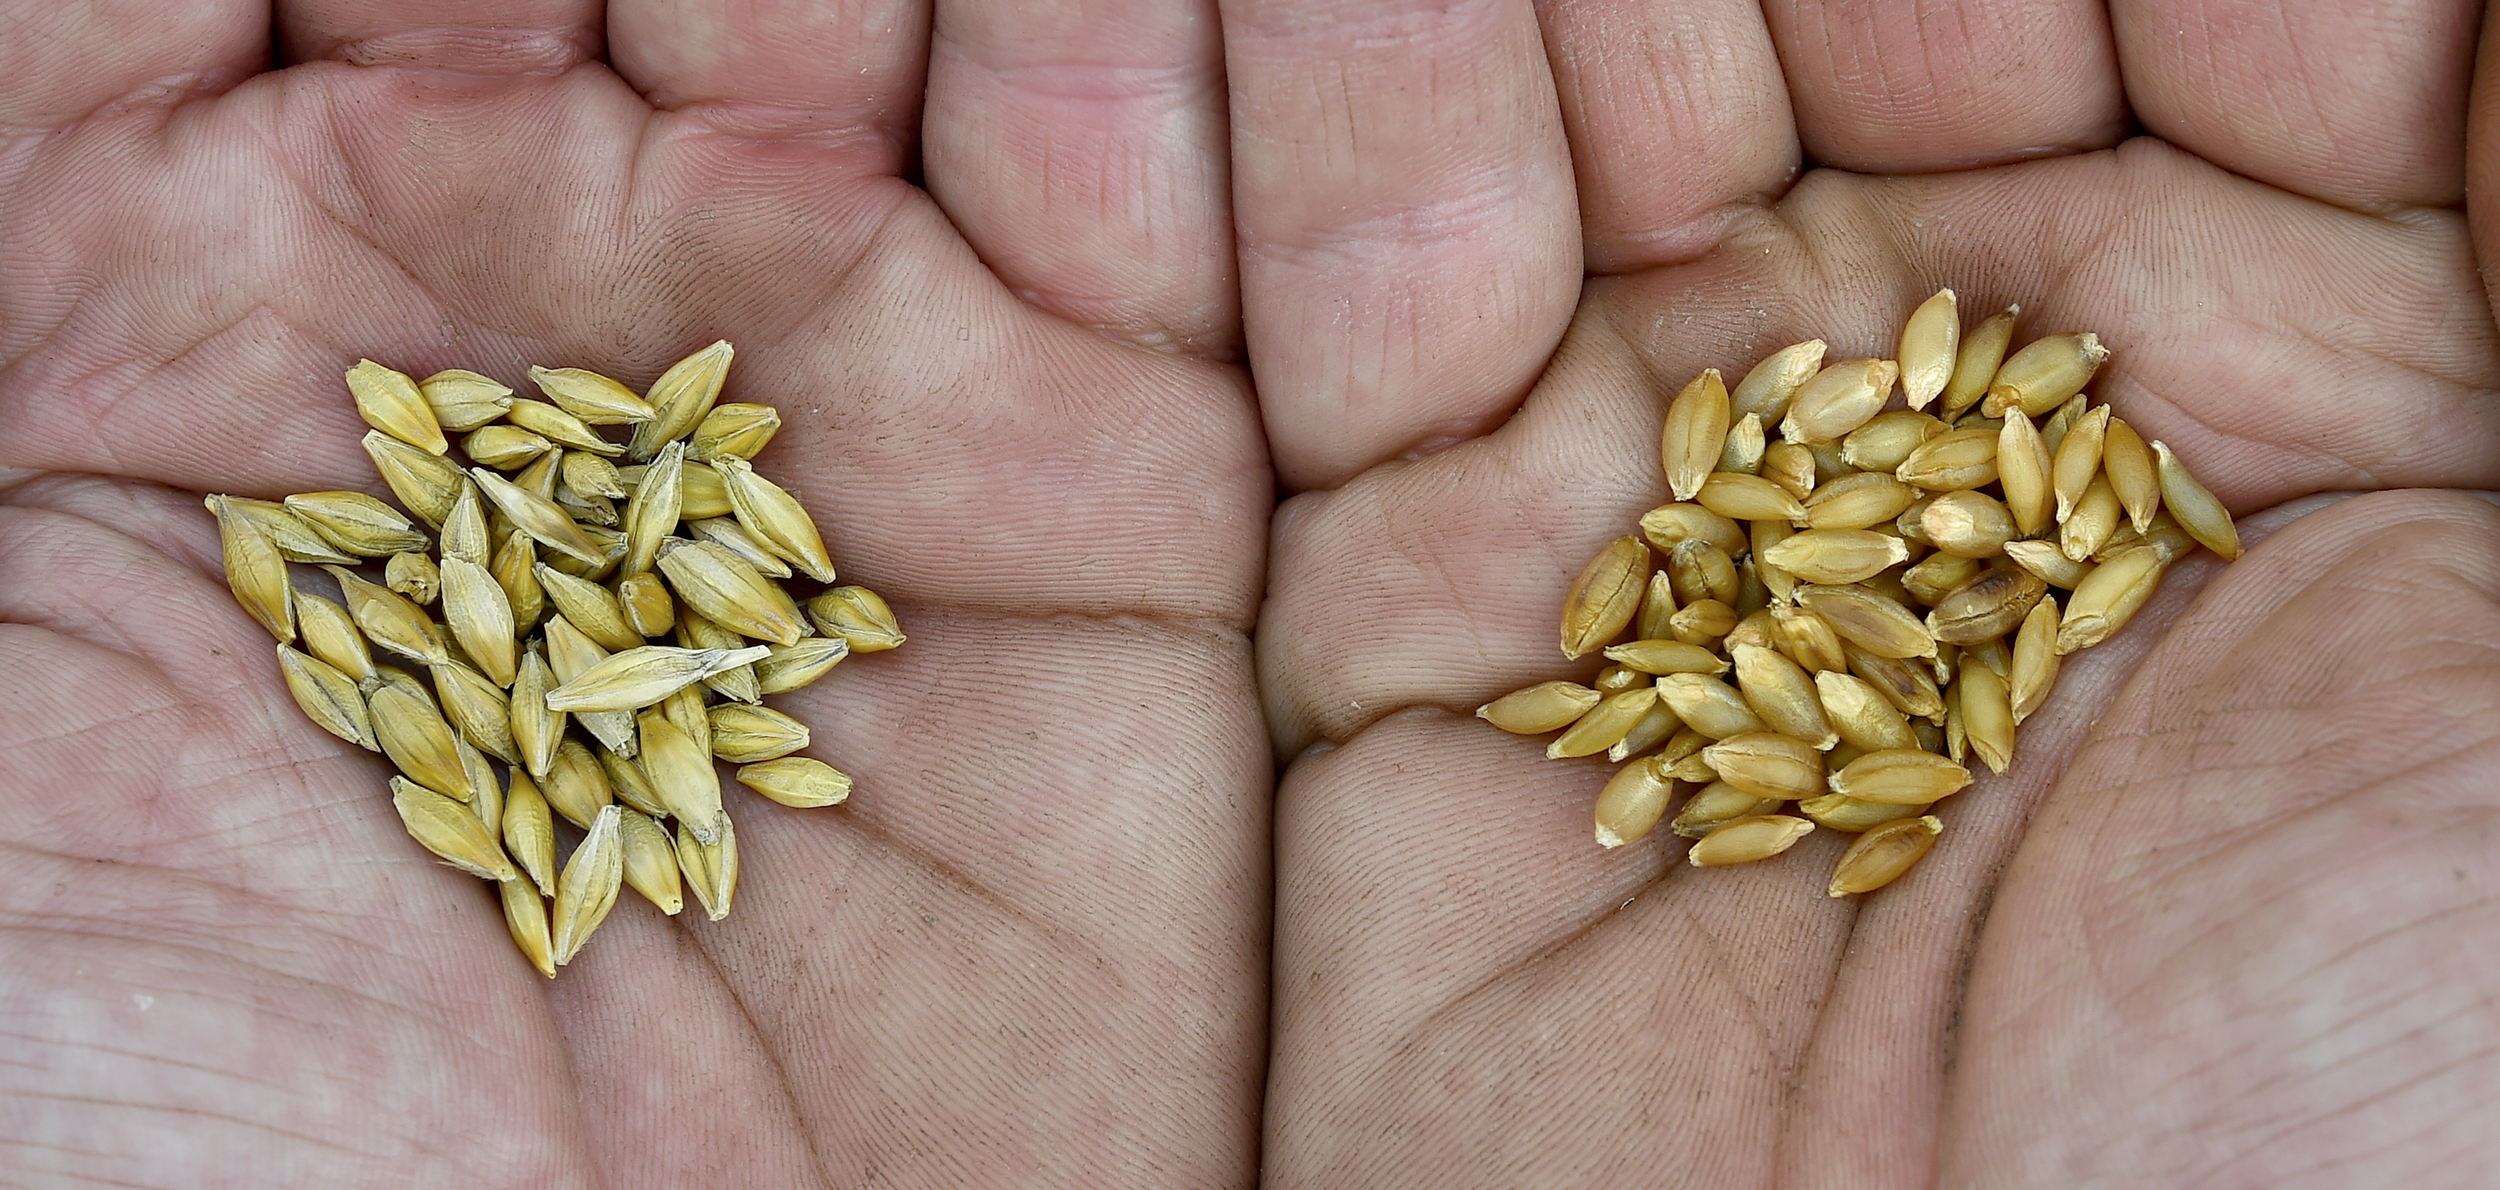 It's barley, it's naked, and it's back in Britain   Read more...